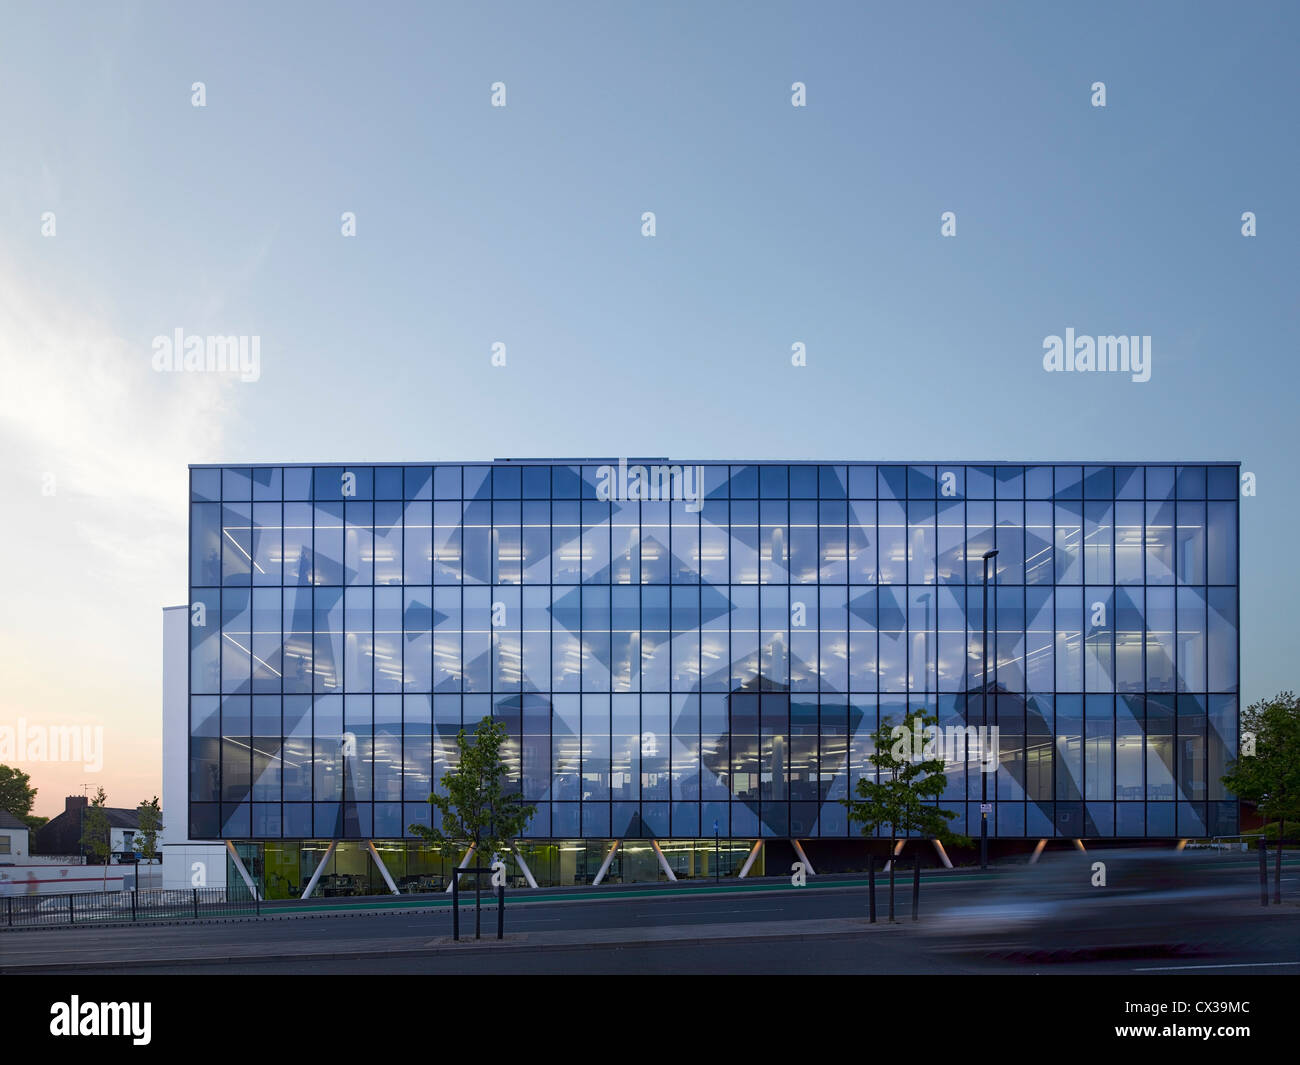 office building for walsall housing group walsall united kingdom office building for walsall housing group walsall united kingdom architect bisset adams 2012 monumental front elevation of